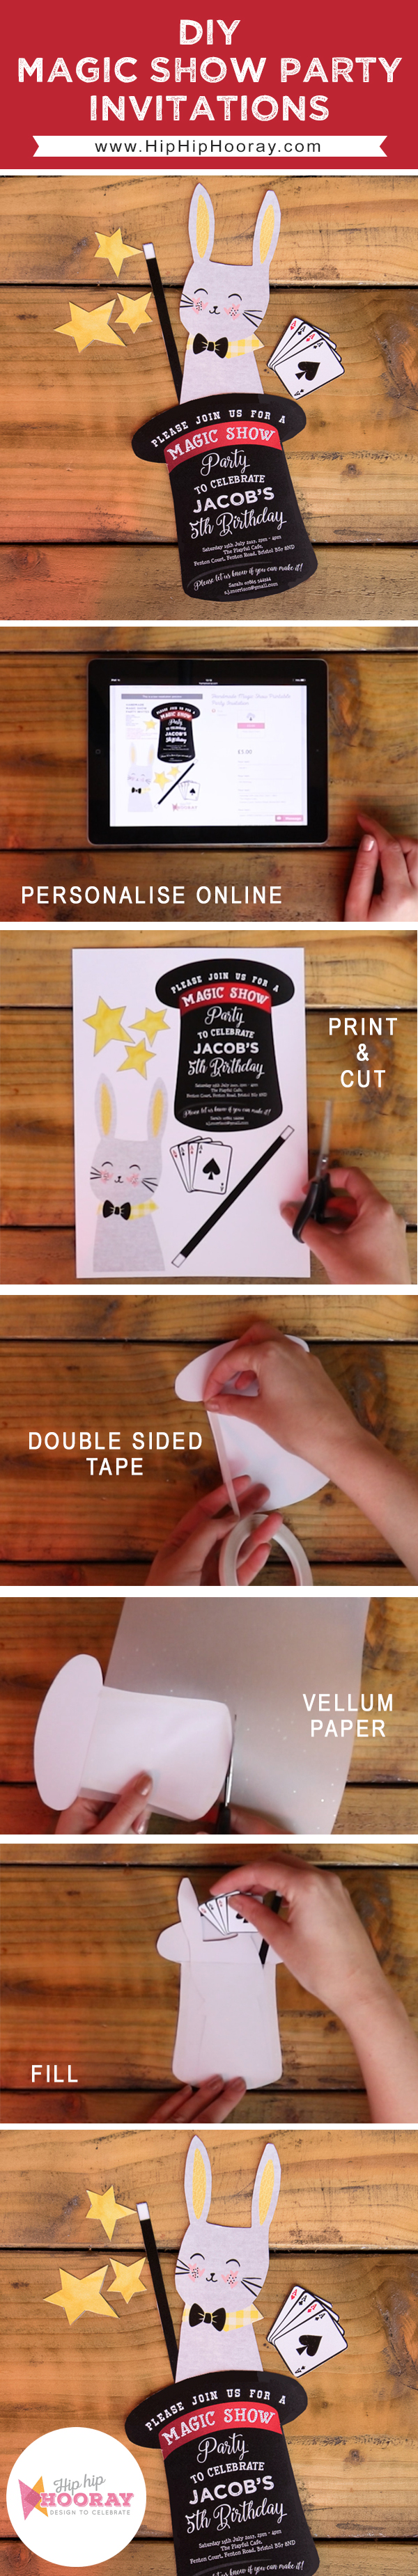 Step-By-Step Guide: Magic Show Kids Party Invitations | DIY Craft ...